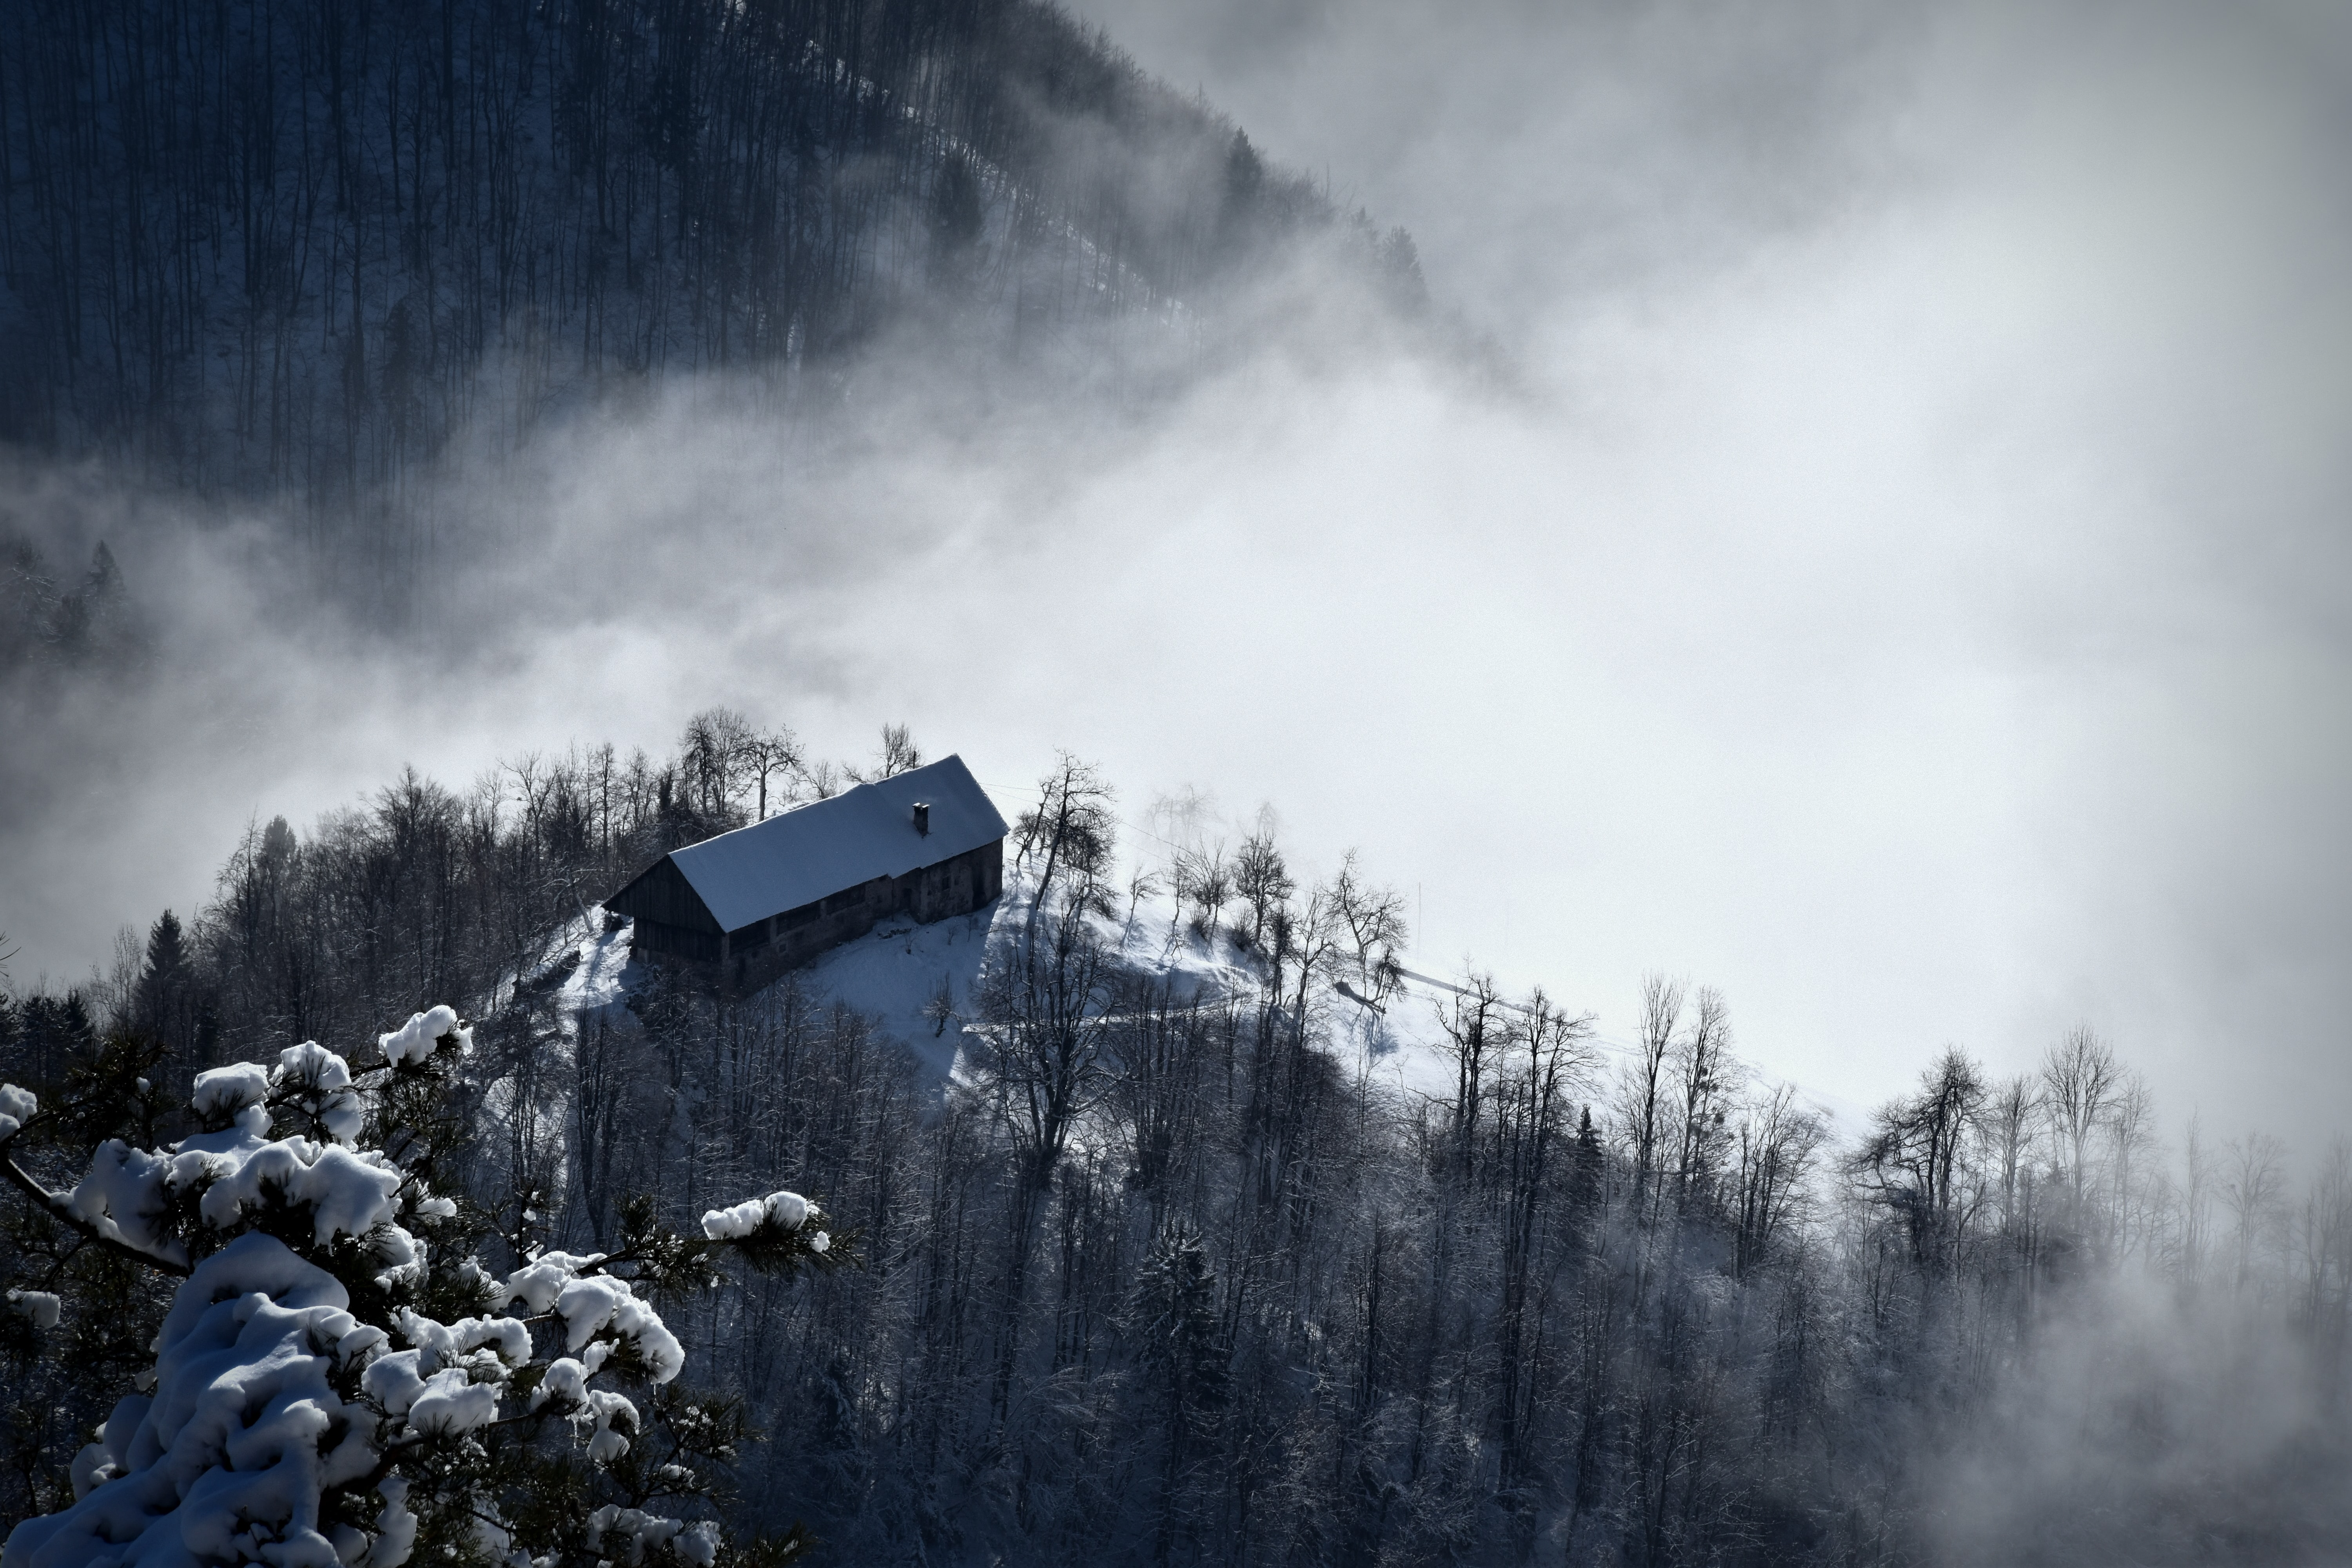 A foggy, cloudy sky casted above a forest with a building on top of the hill